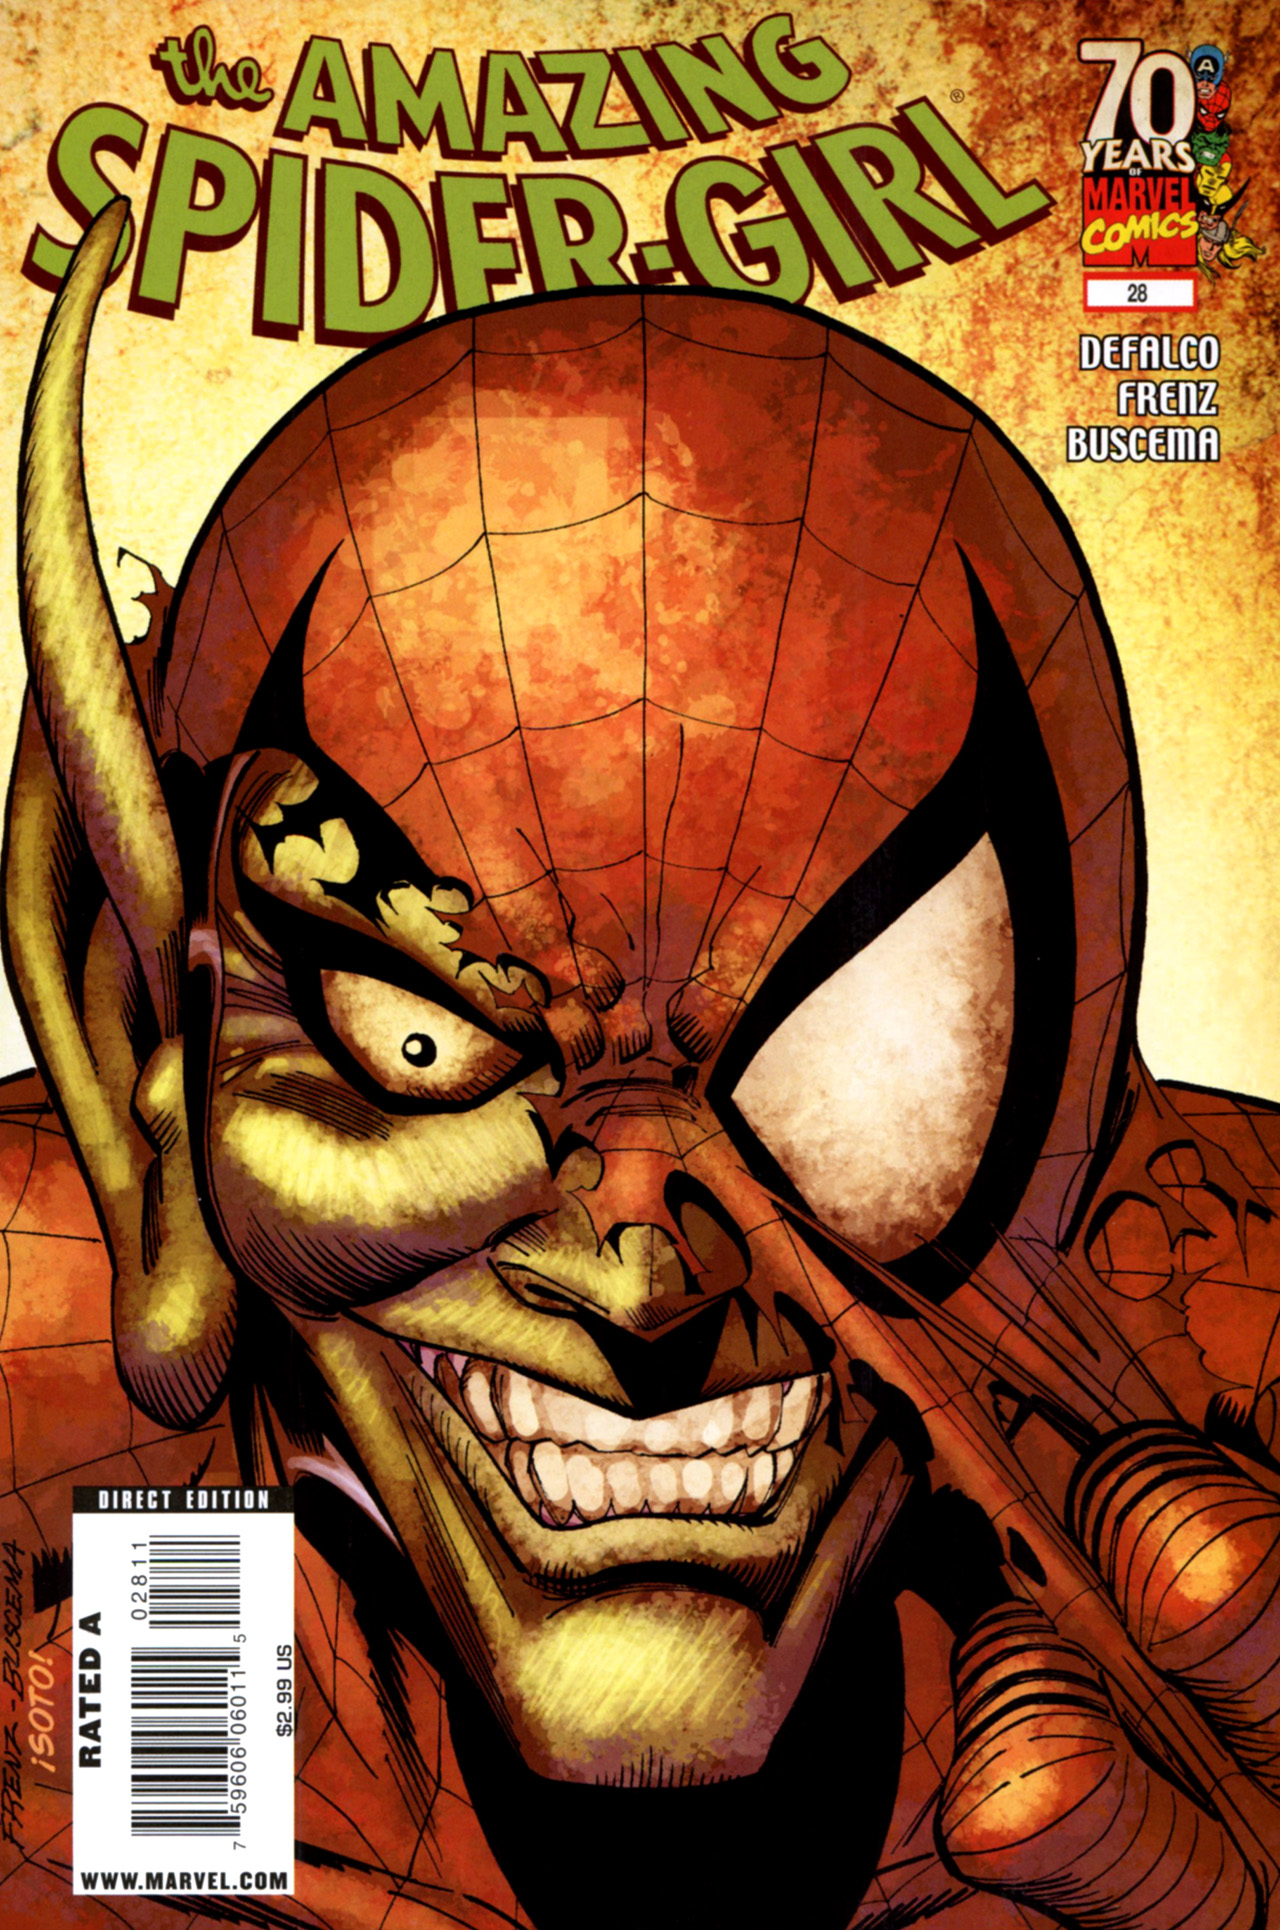 Read online Amazing Spider-Girl comic -  Issue #28 - 1